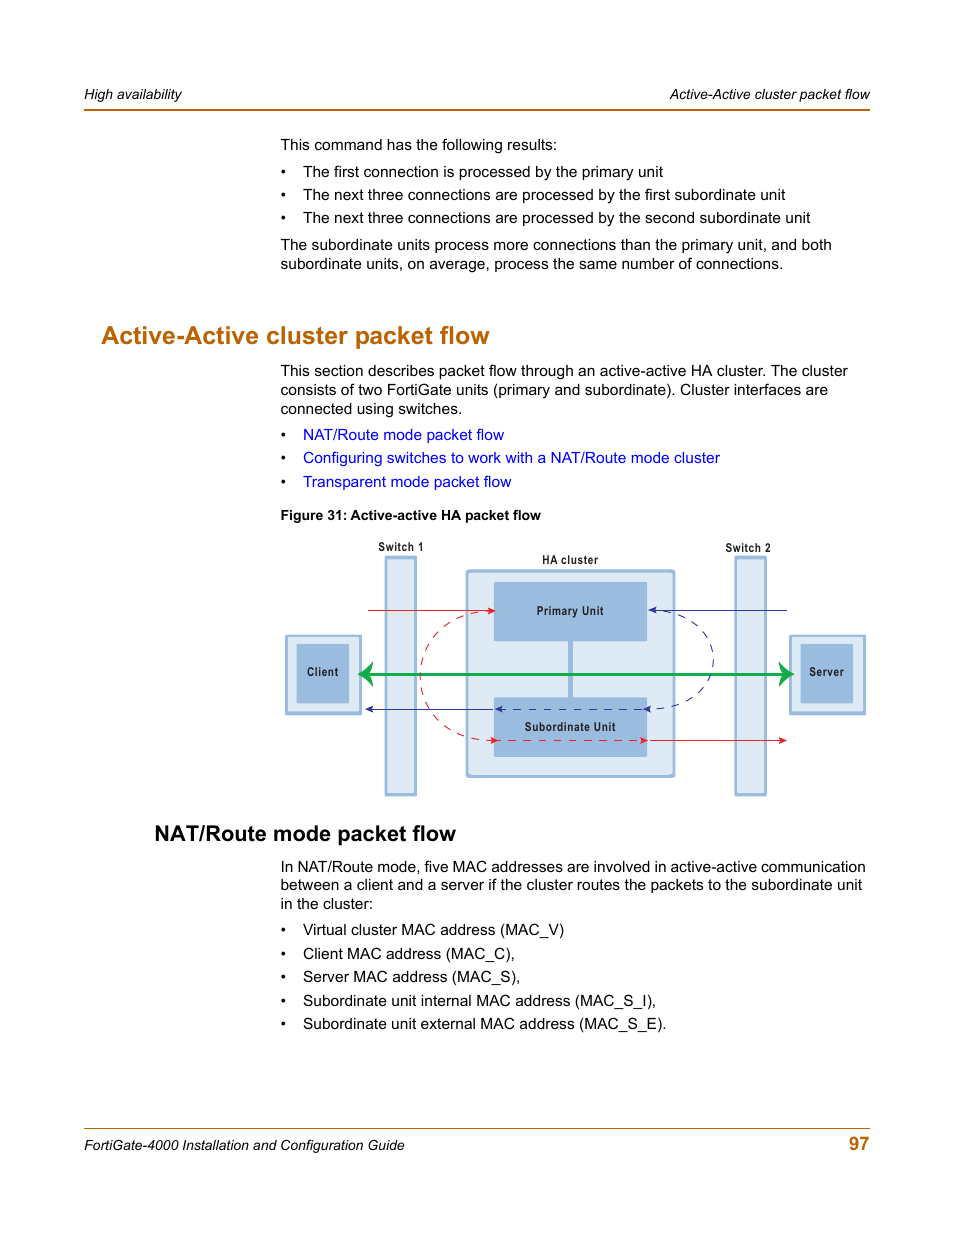 Active-active cluster packet flow, Nat/route mode packet flow